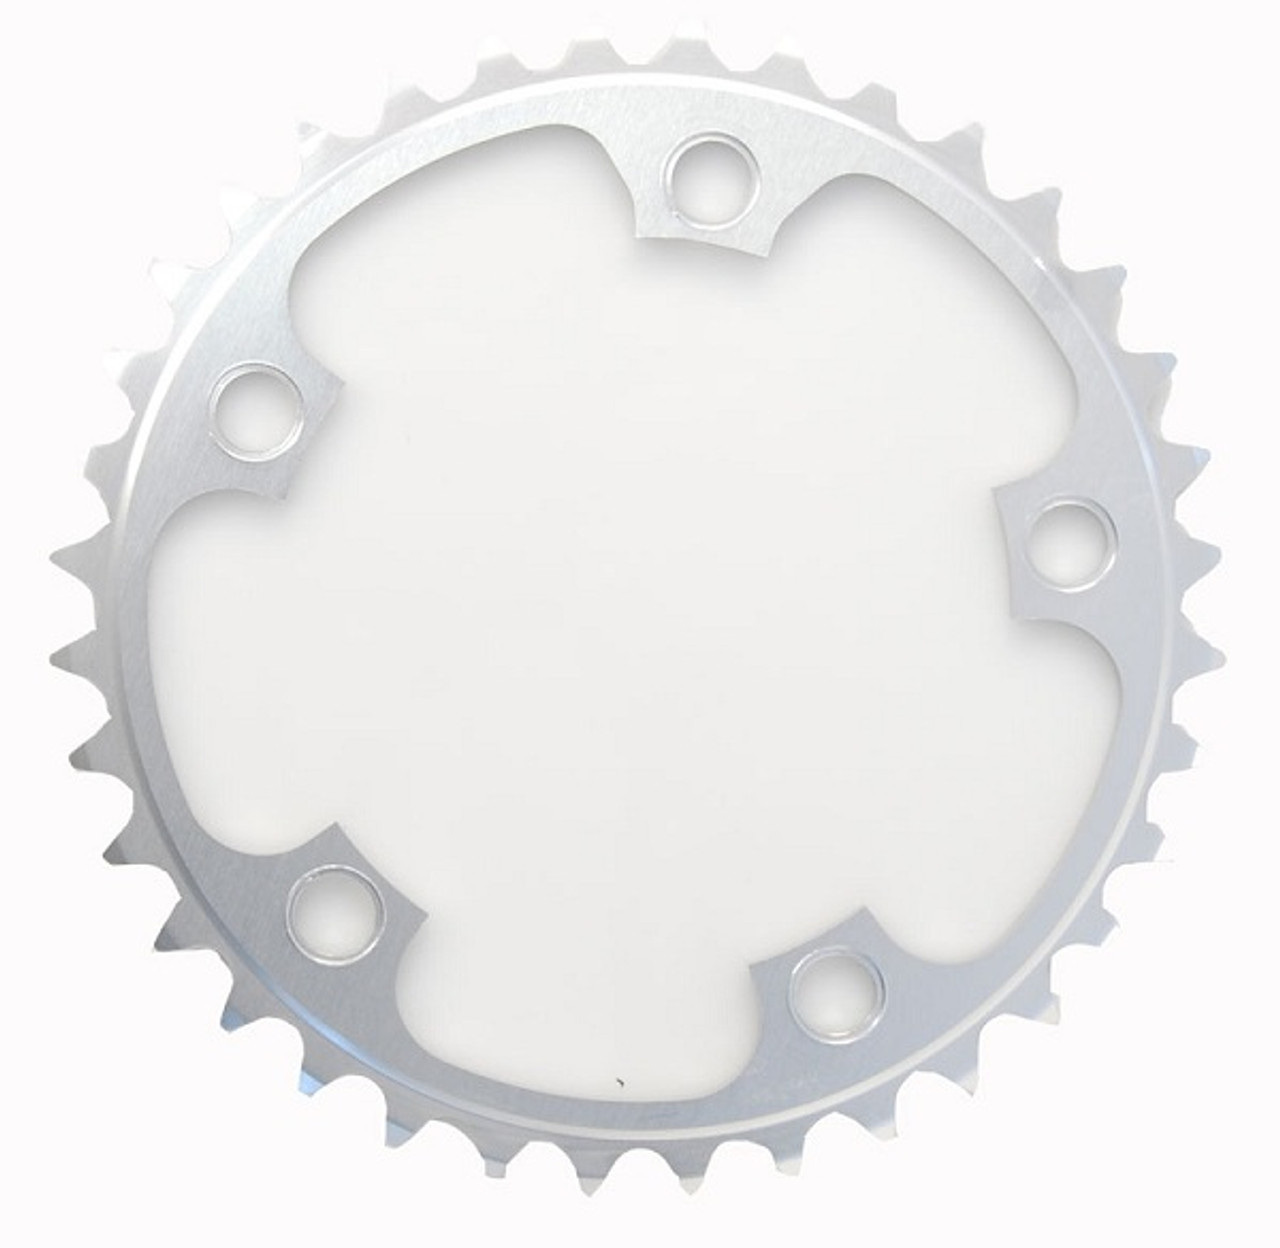 Stronglight Dural 5083 9/10 Speed Chainring 130mm BCD All Sizes